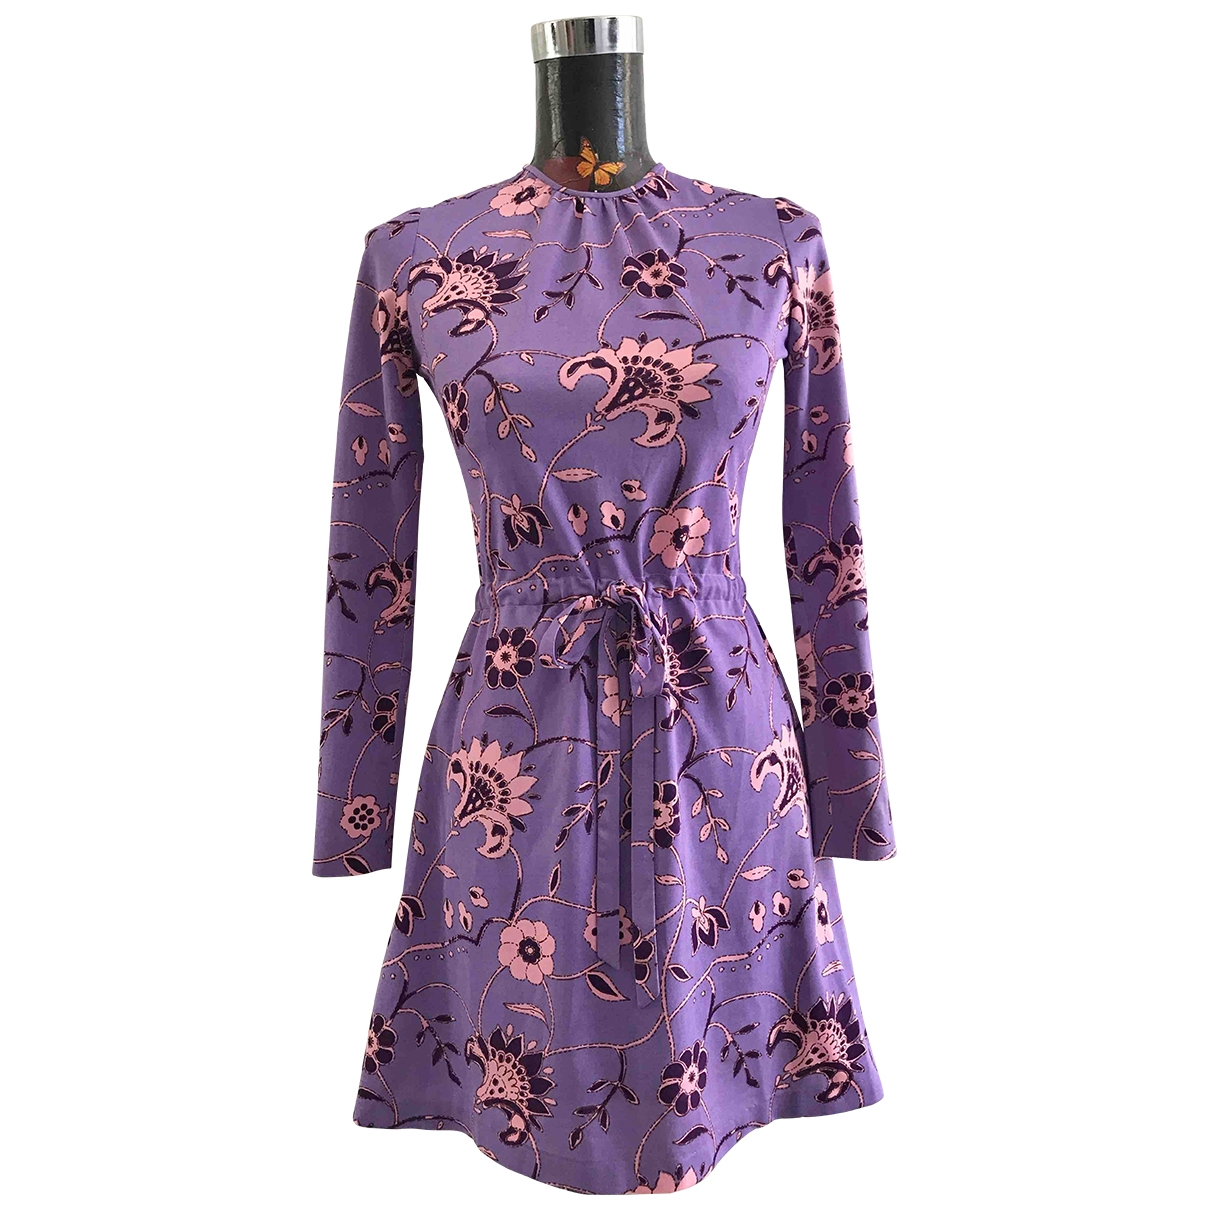 Non Signé / Unsigned \N Purple dress for Women 40 IT